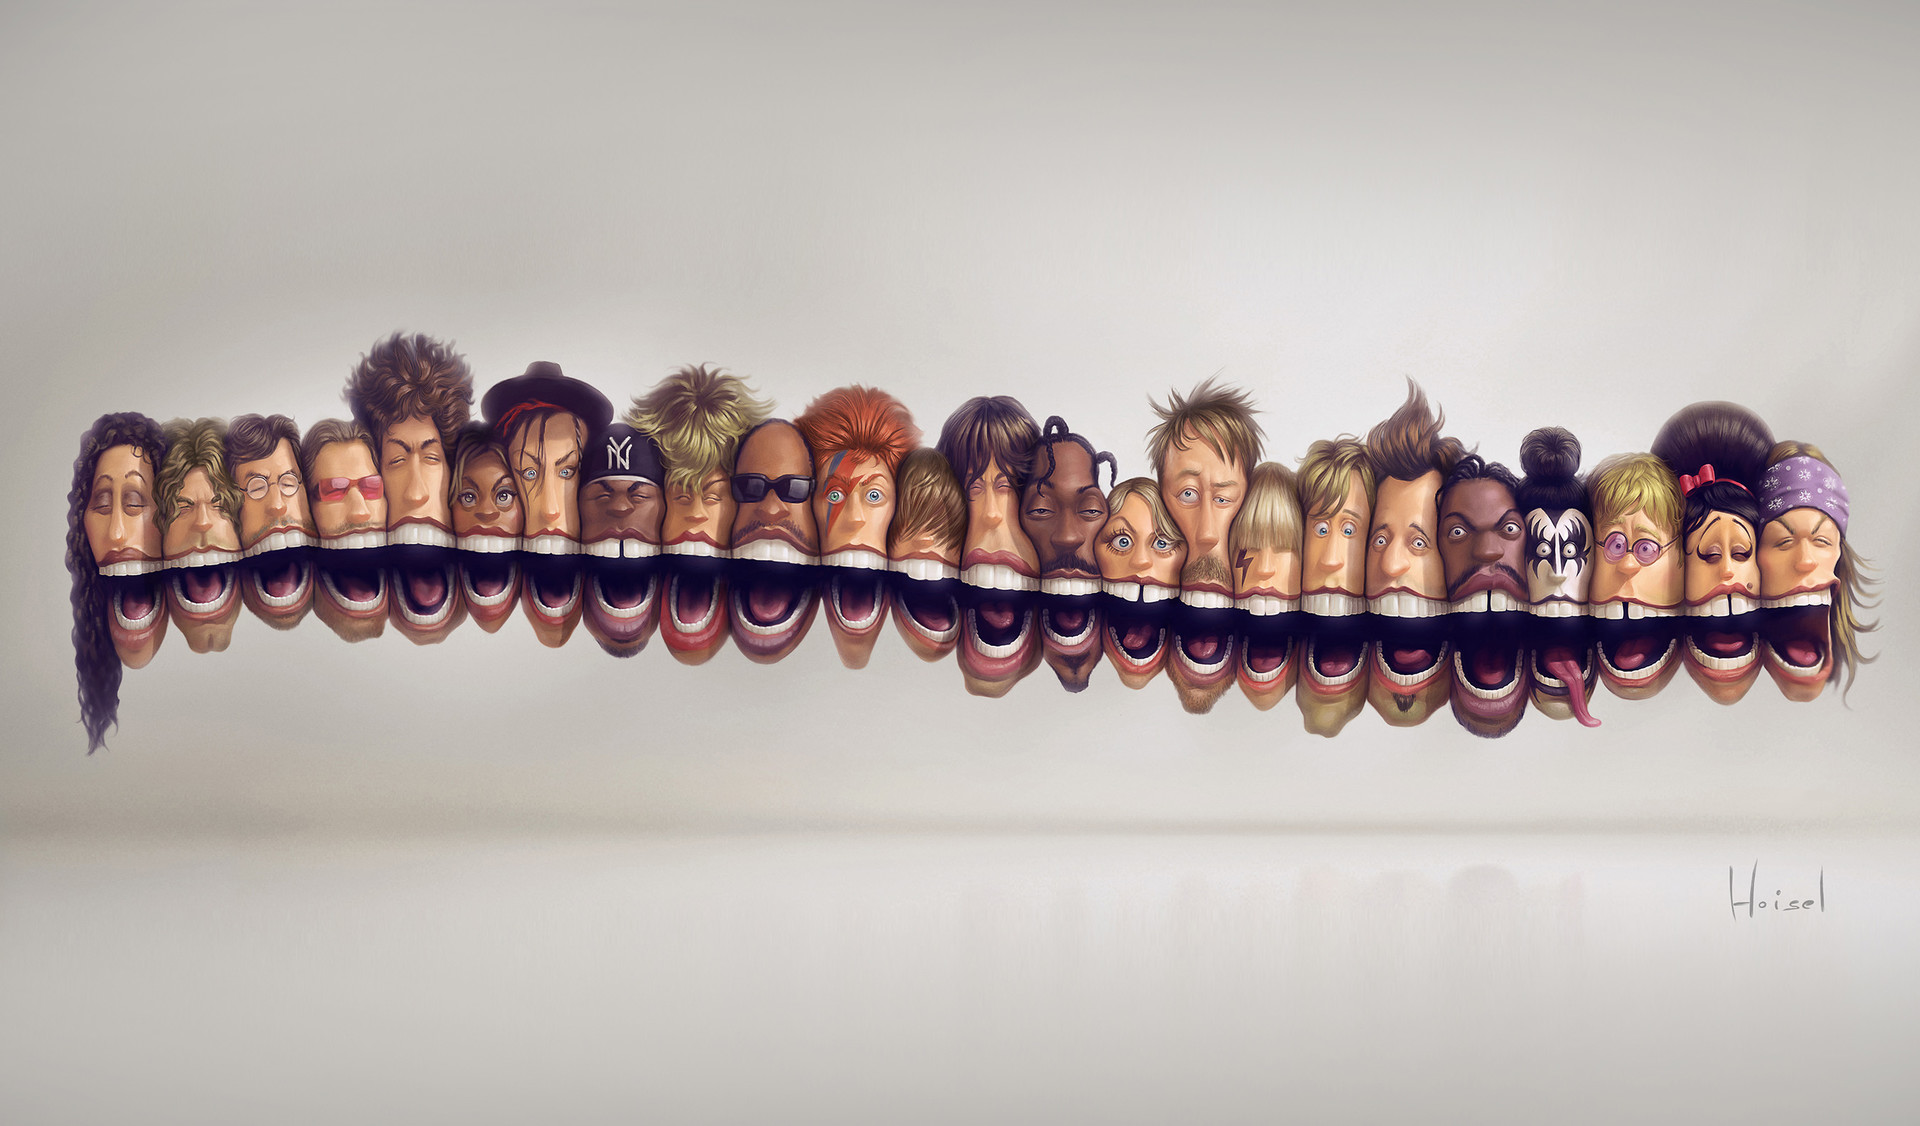 tiago-hoisel-mouth